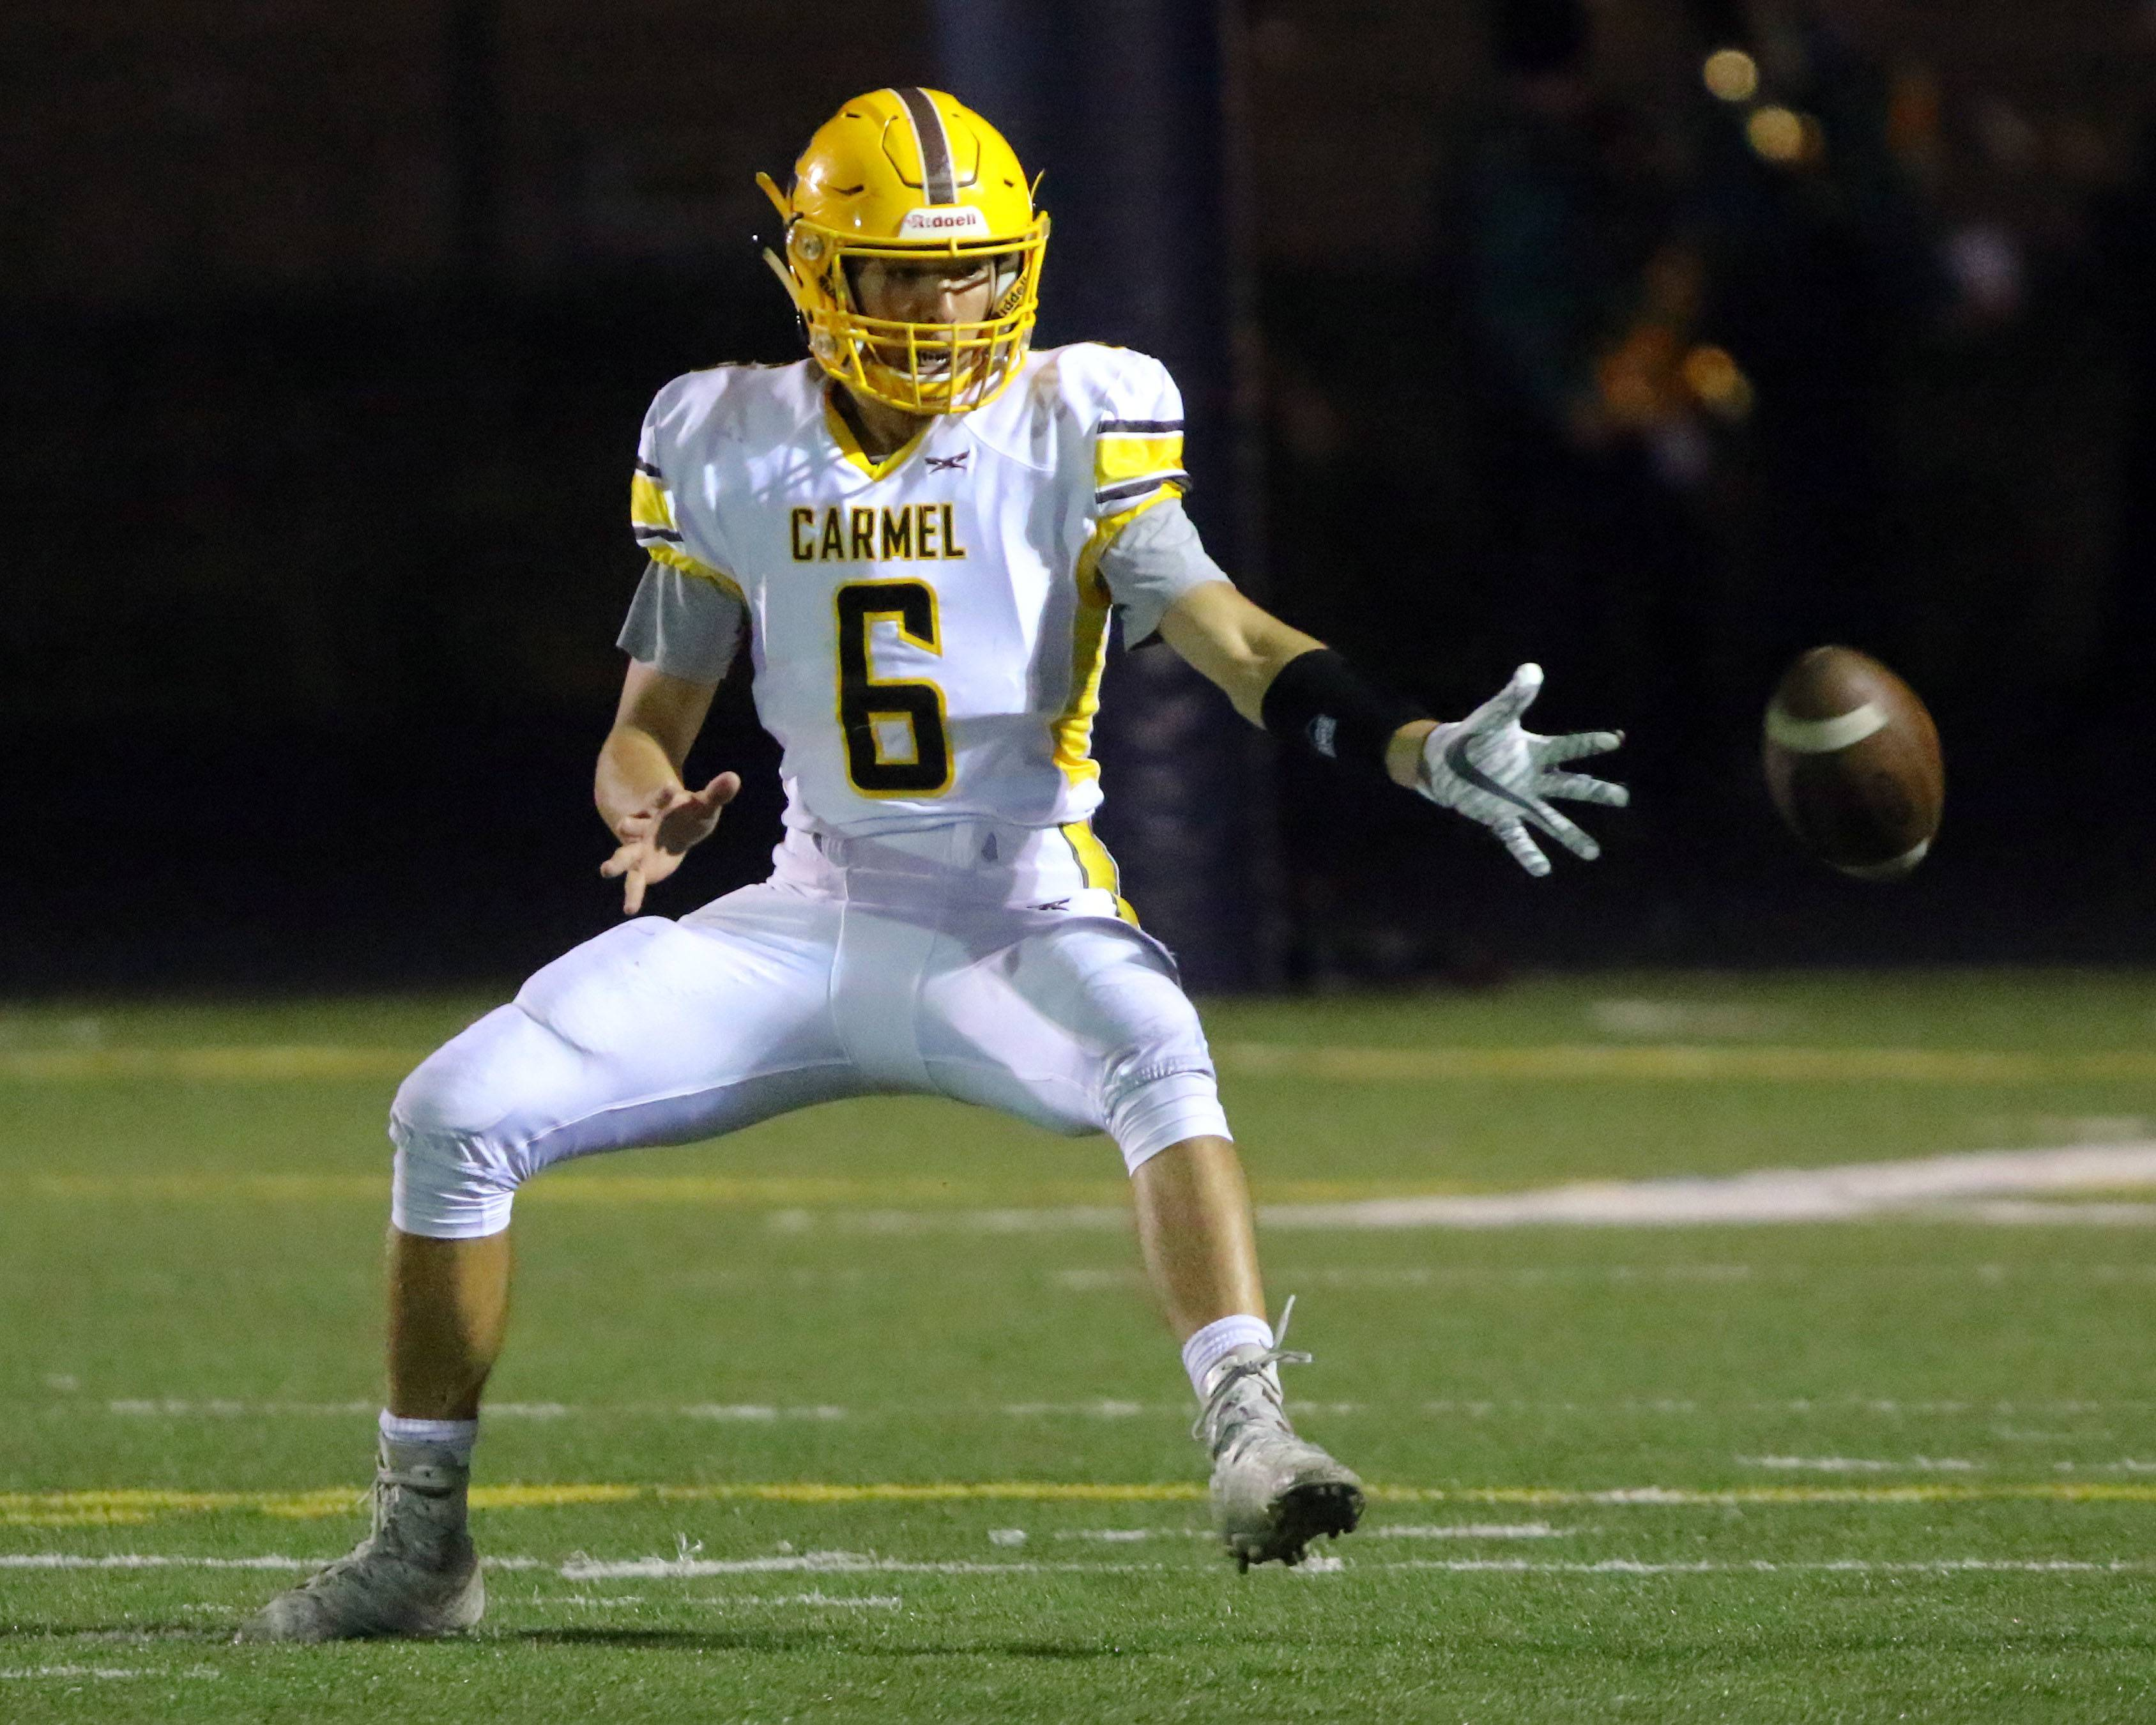 Carmel's Nick Fisher tries to field a kickoff against Notre Dame on Friday night in Niles.